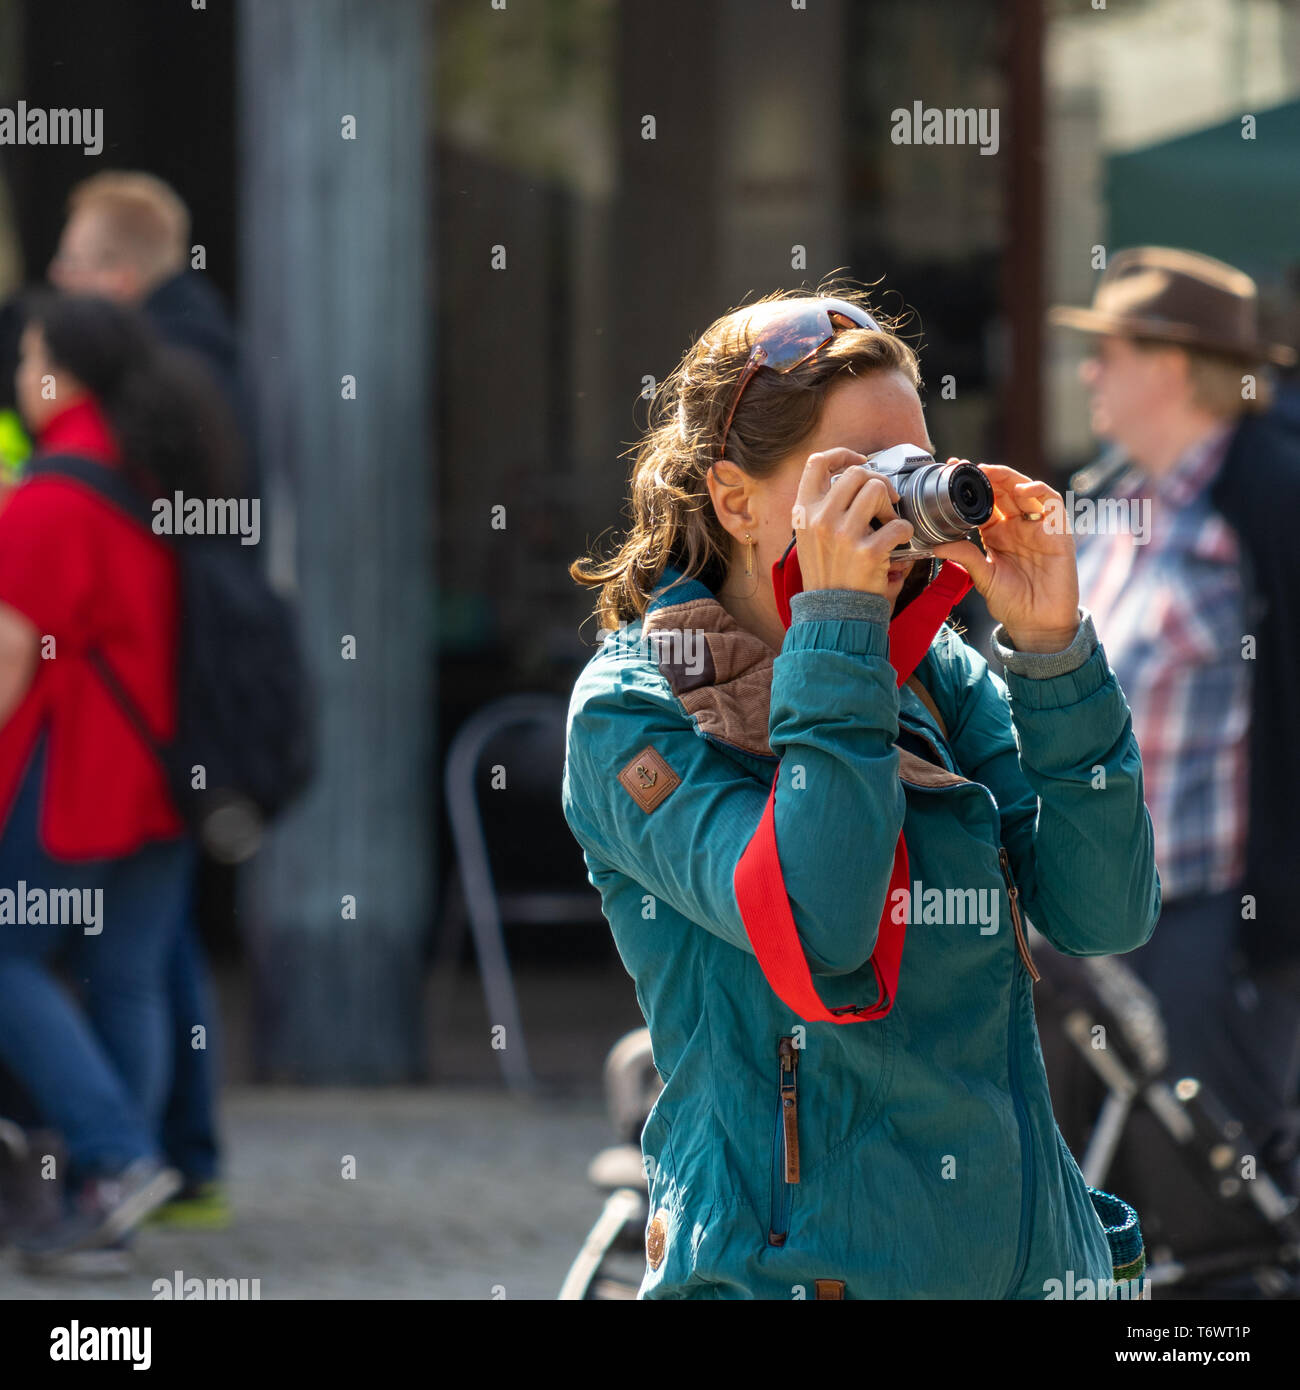 Wolfsburg, Germany, May 1, 2019: Young woman in a turquoise anorak taking photos with the camera - Stock Image